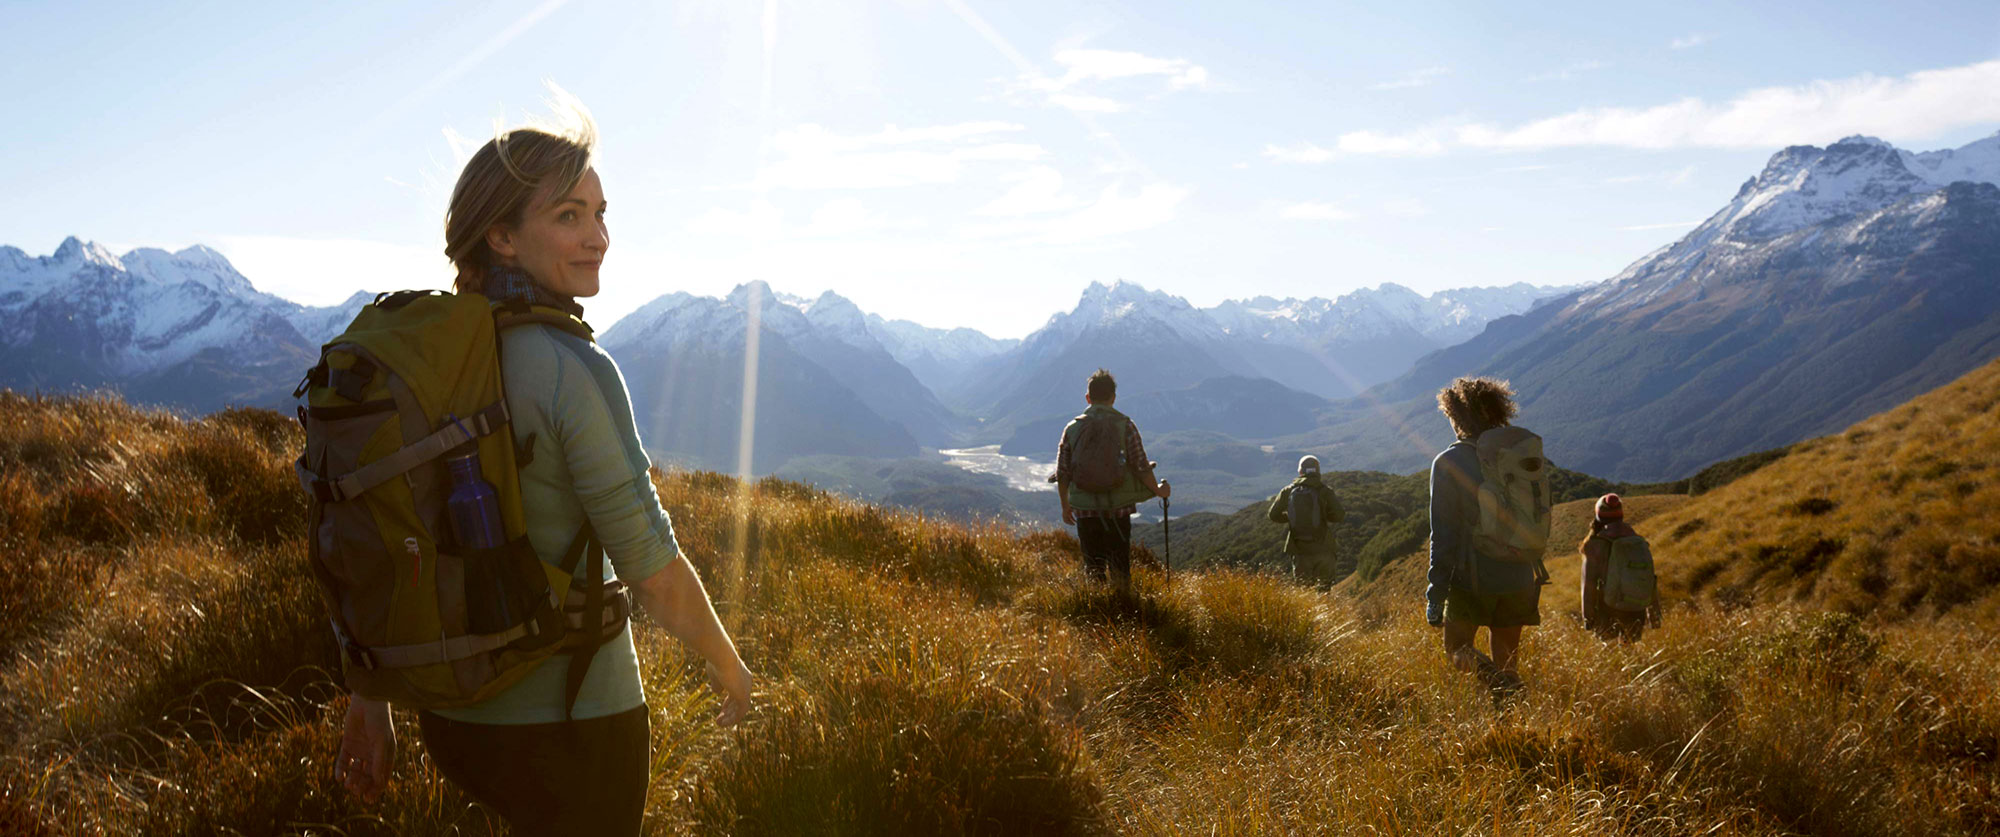 experience-outdoor-hero-1-new-zealand-hiking-queenstown-2000x837.jpg